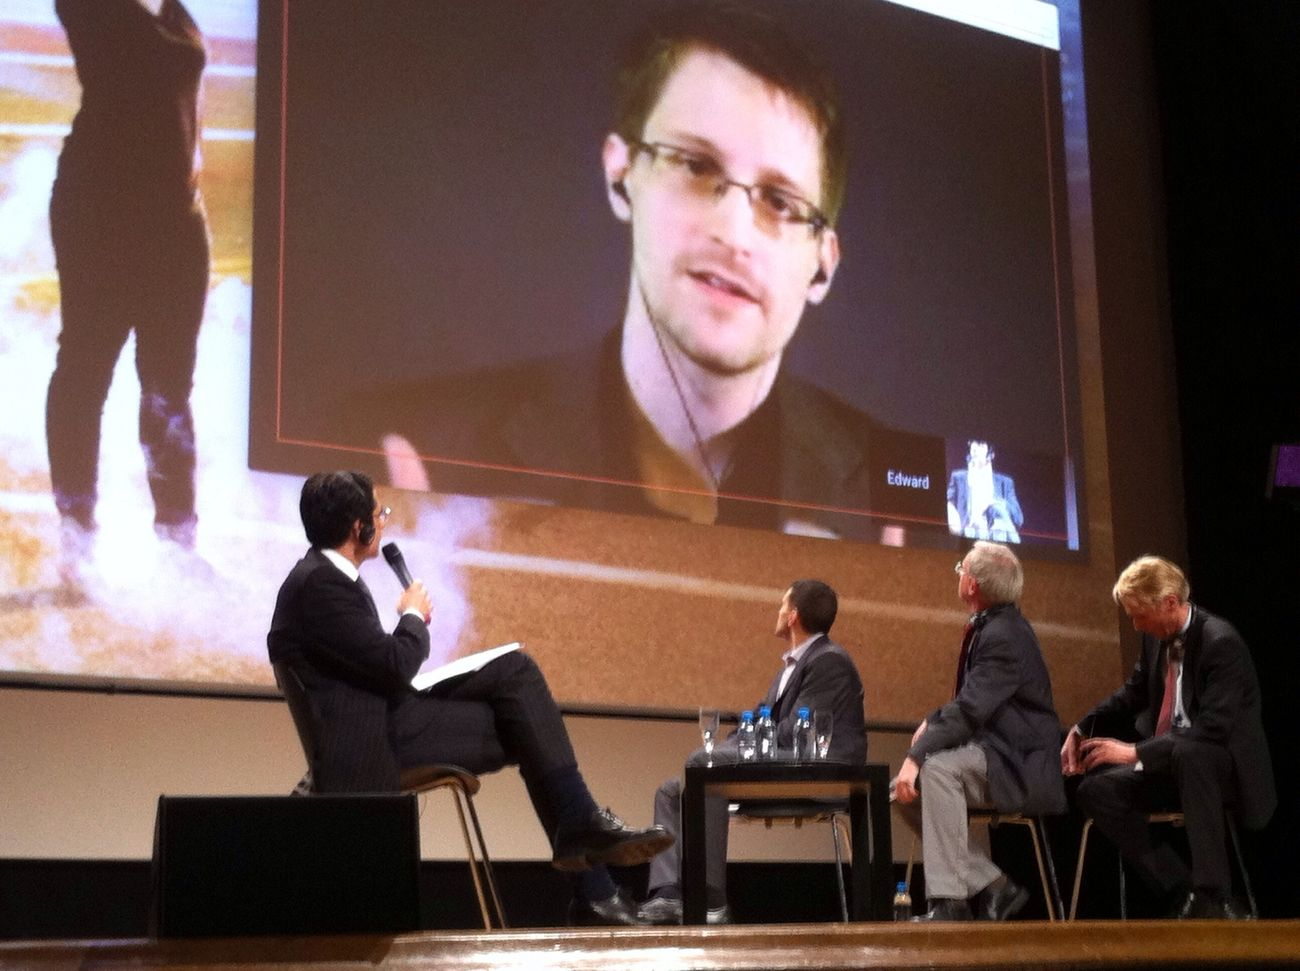 EDWARD SNOWDEN LIVE The Human Condition Under Pressure Swiss Asylum Edward Snowden Spectator People WOW Living Bold